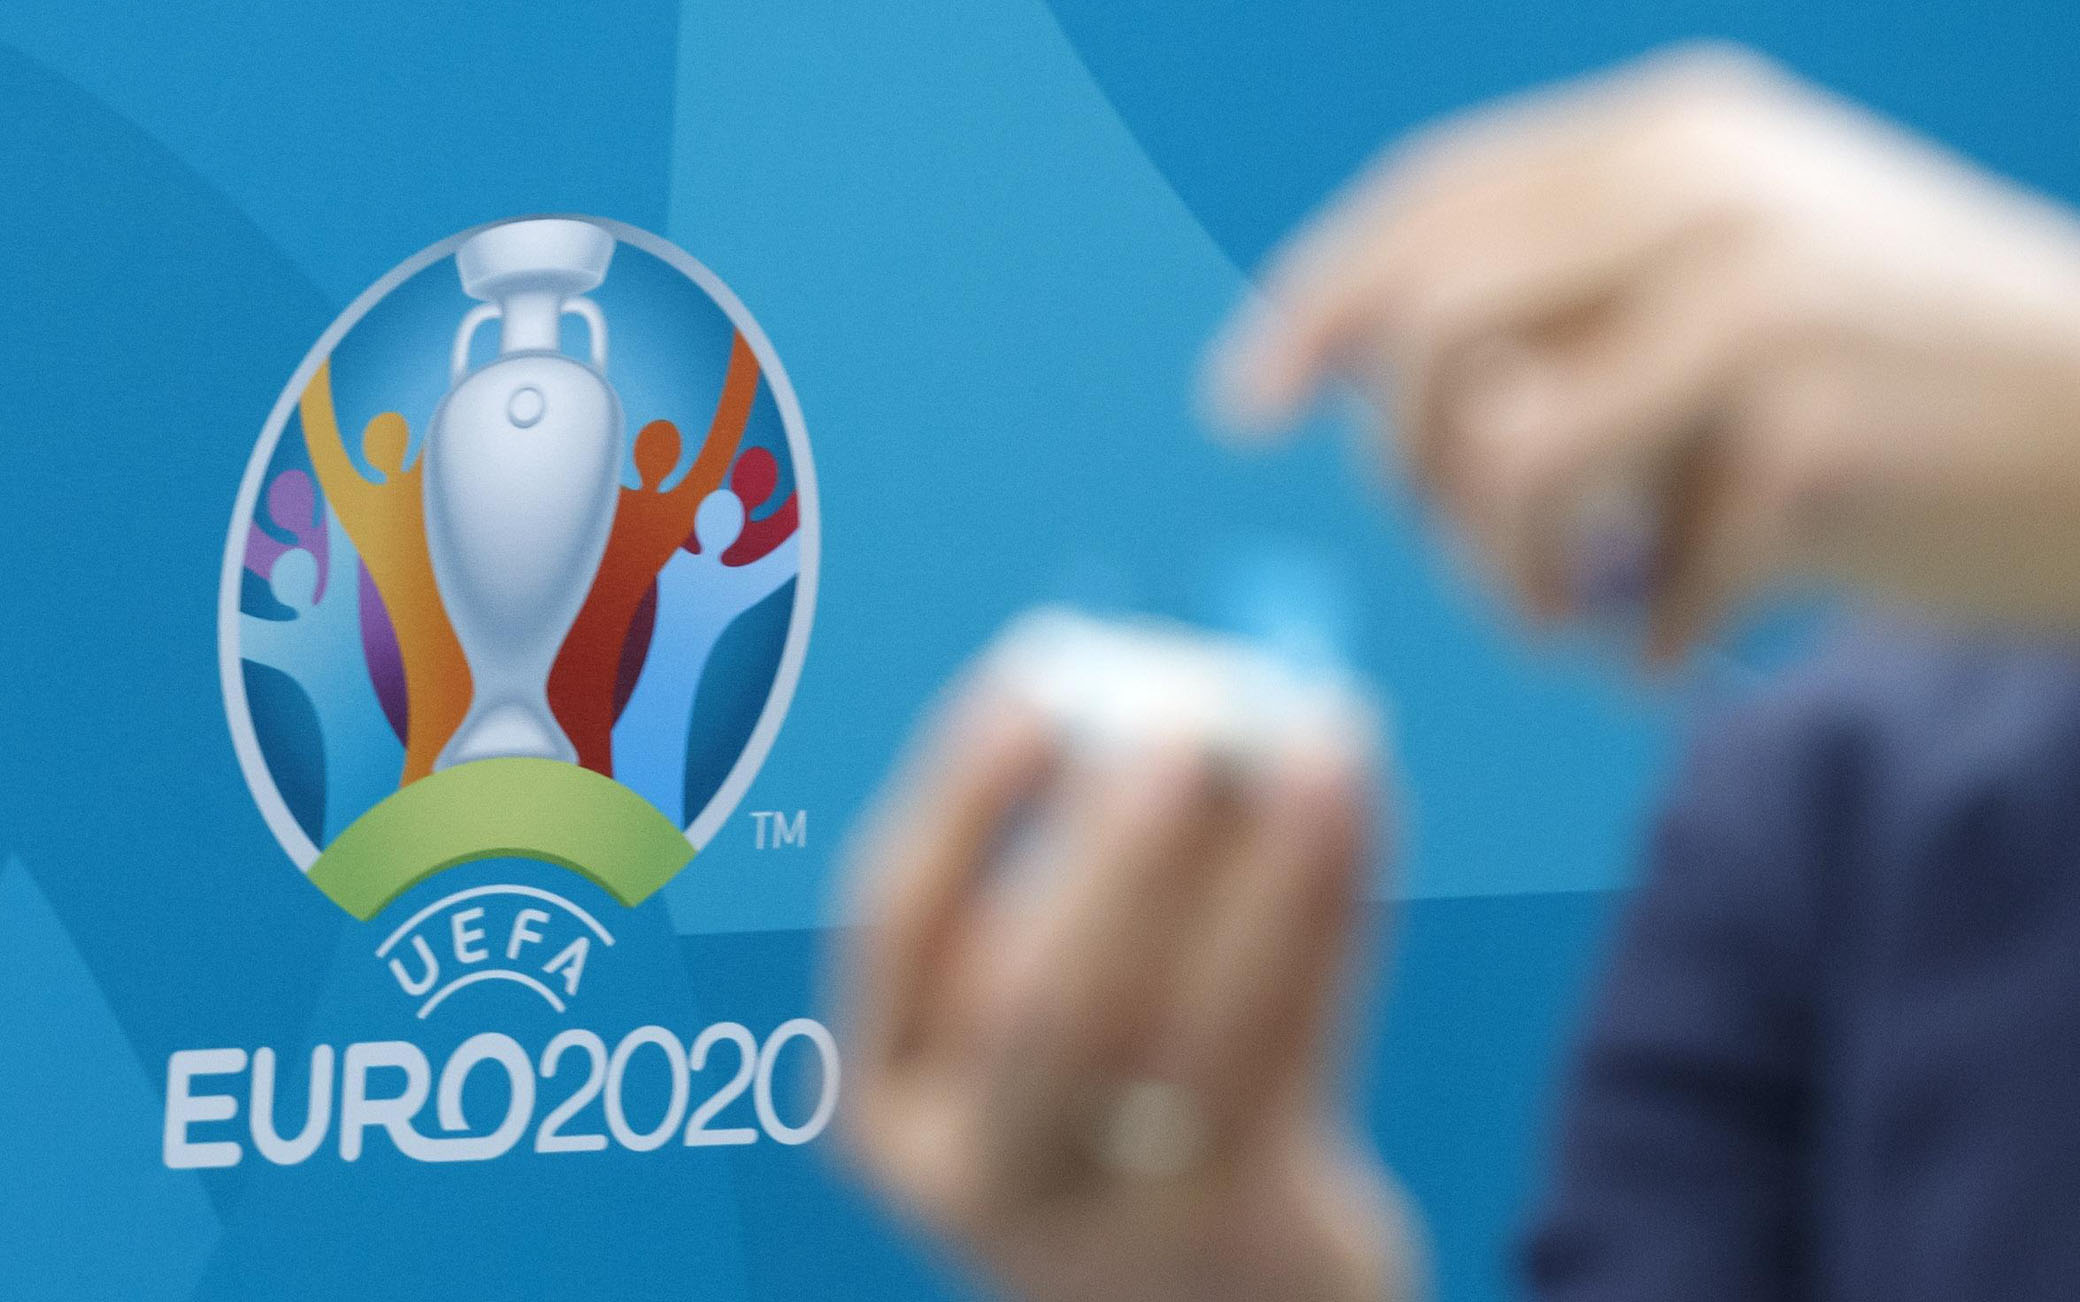 epa08016923 Former Greek soccer player Angelos Charisteas opens a ball containing the name of a national soccer team during  the drawing of the UEFA EURO 2020 Play-off matches, at the UEFA headquarters in Nyon, Switzerland, 22 November 2019.  EPA/SALVATORE DI NOLFI